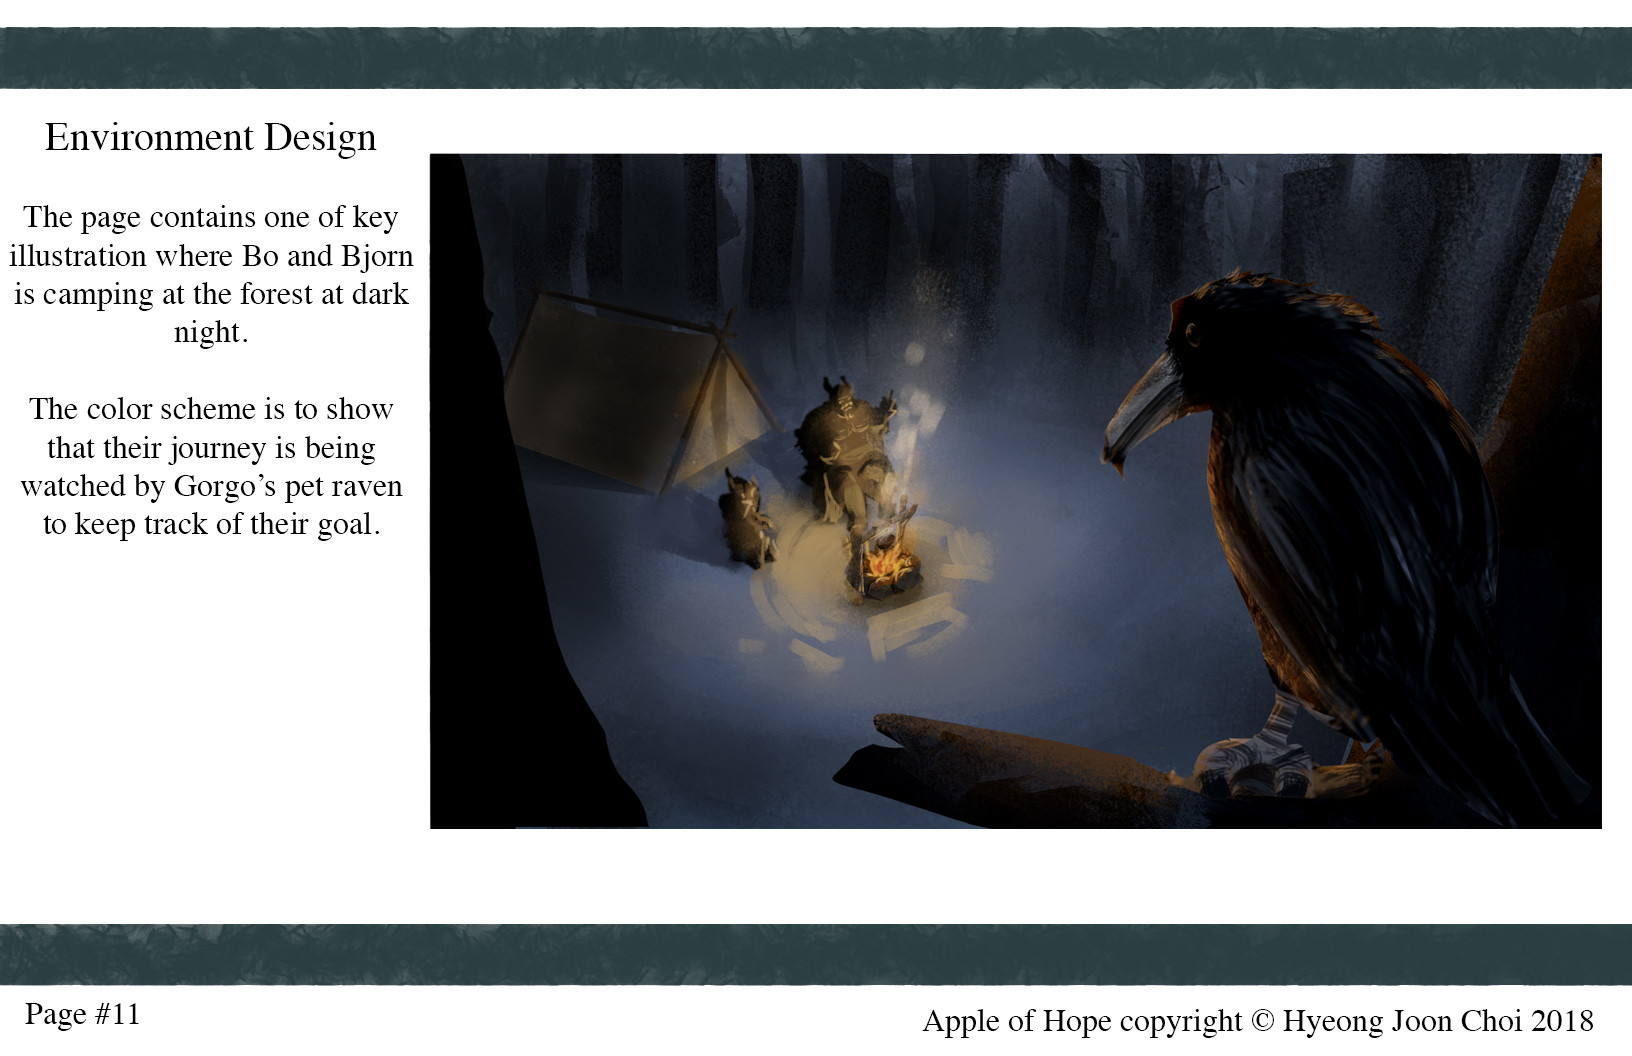 One of Environment Designs for Apple of Hope.